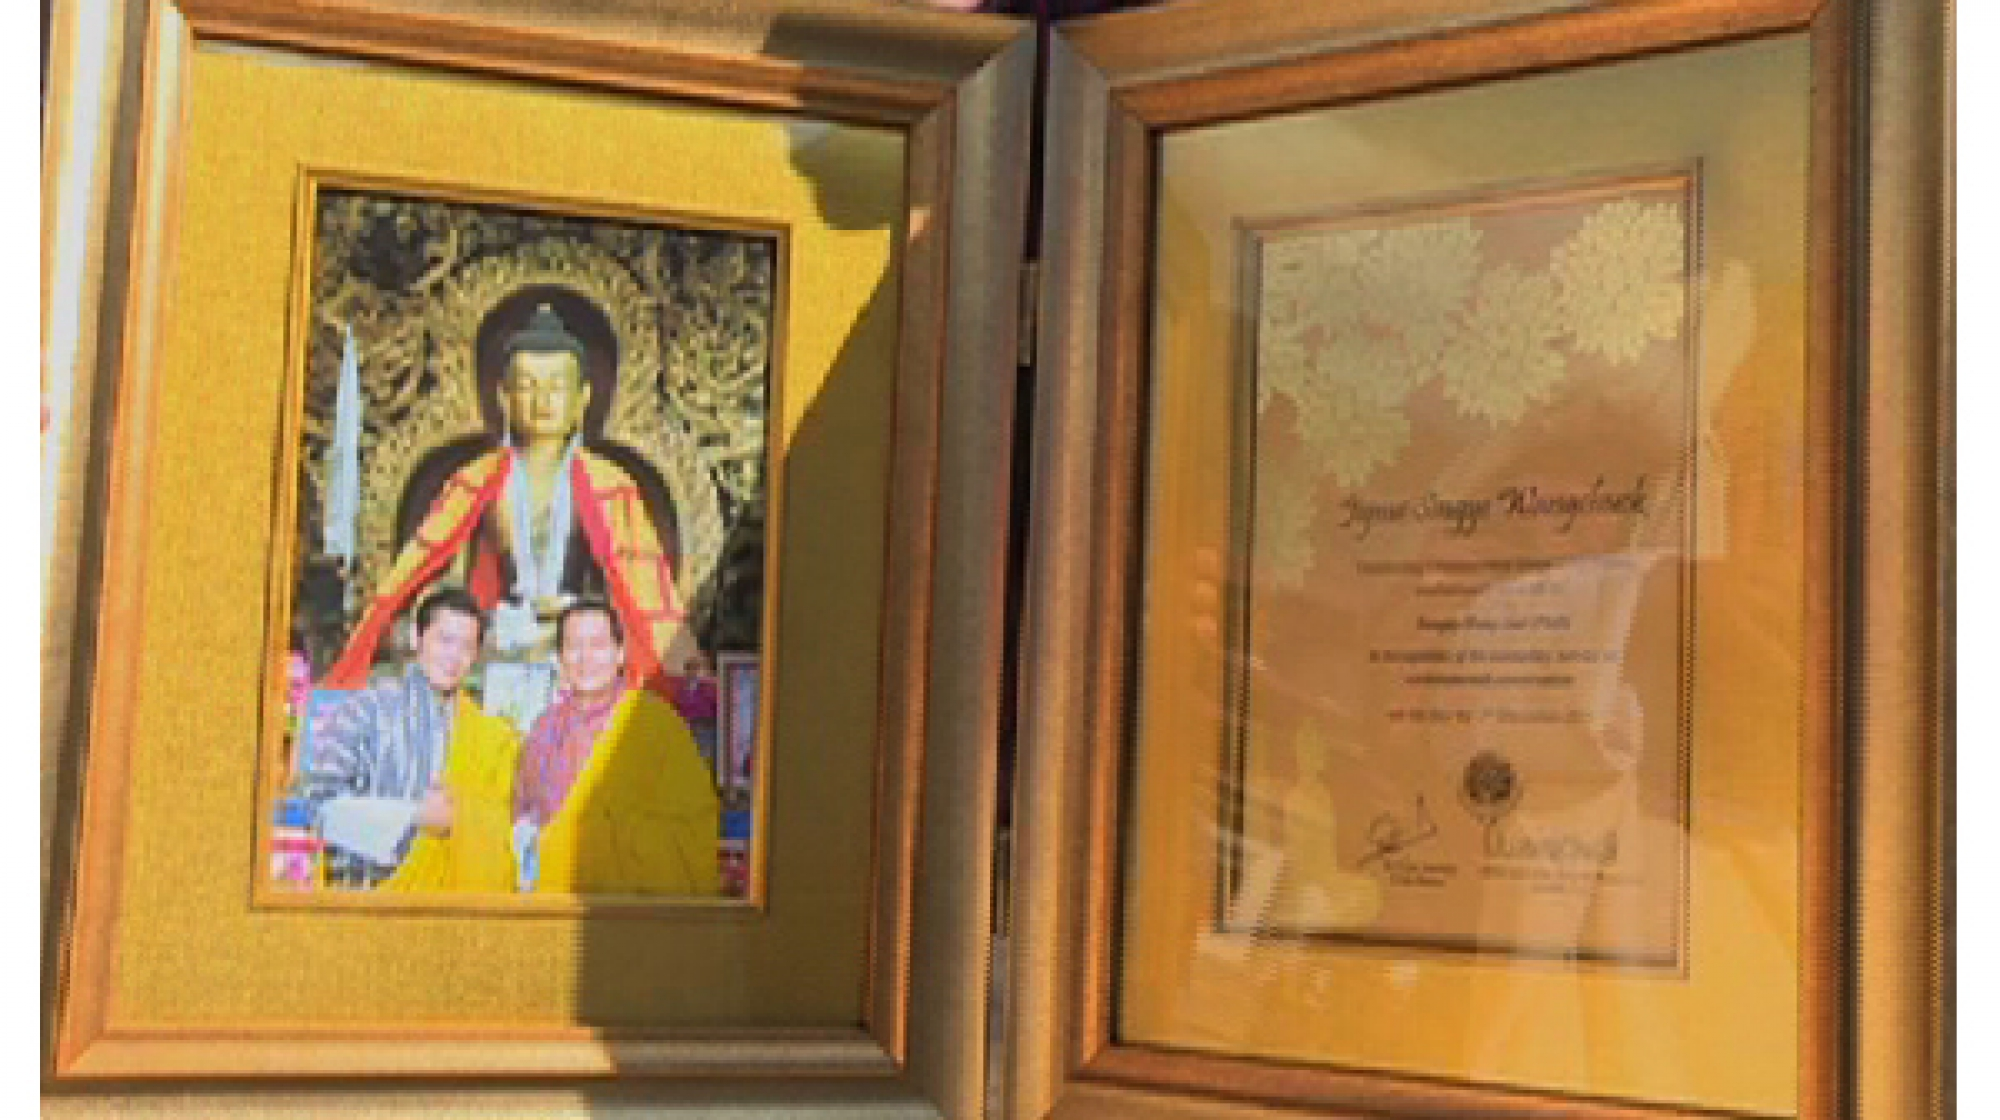 Fifth Jigme Singye Wangchuck Outstanding Environmental Stewardship Award